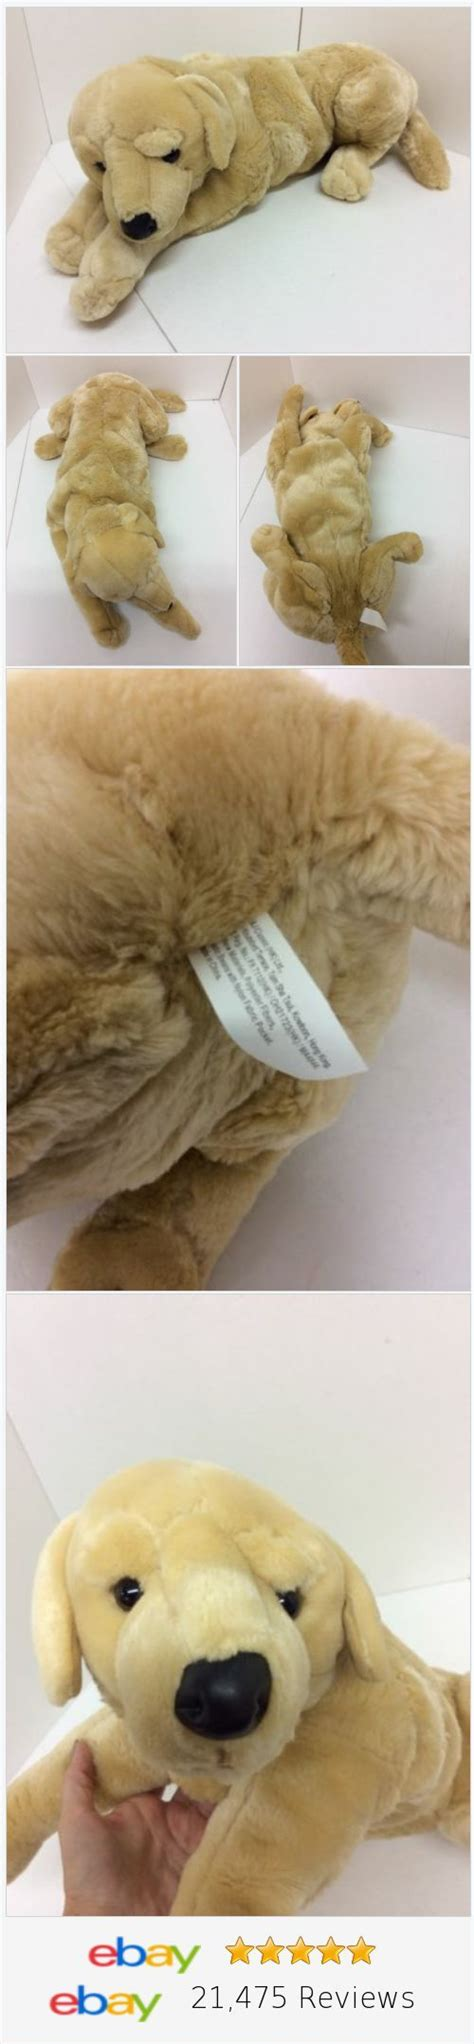 large stuffed golden retriever 17 best images about looking for a jumbo stuffed animal on toys toys r